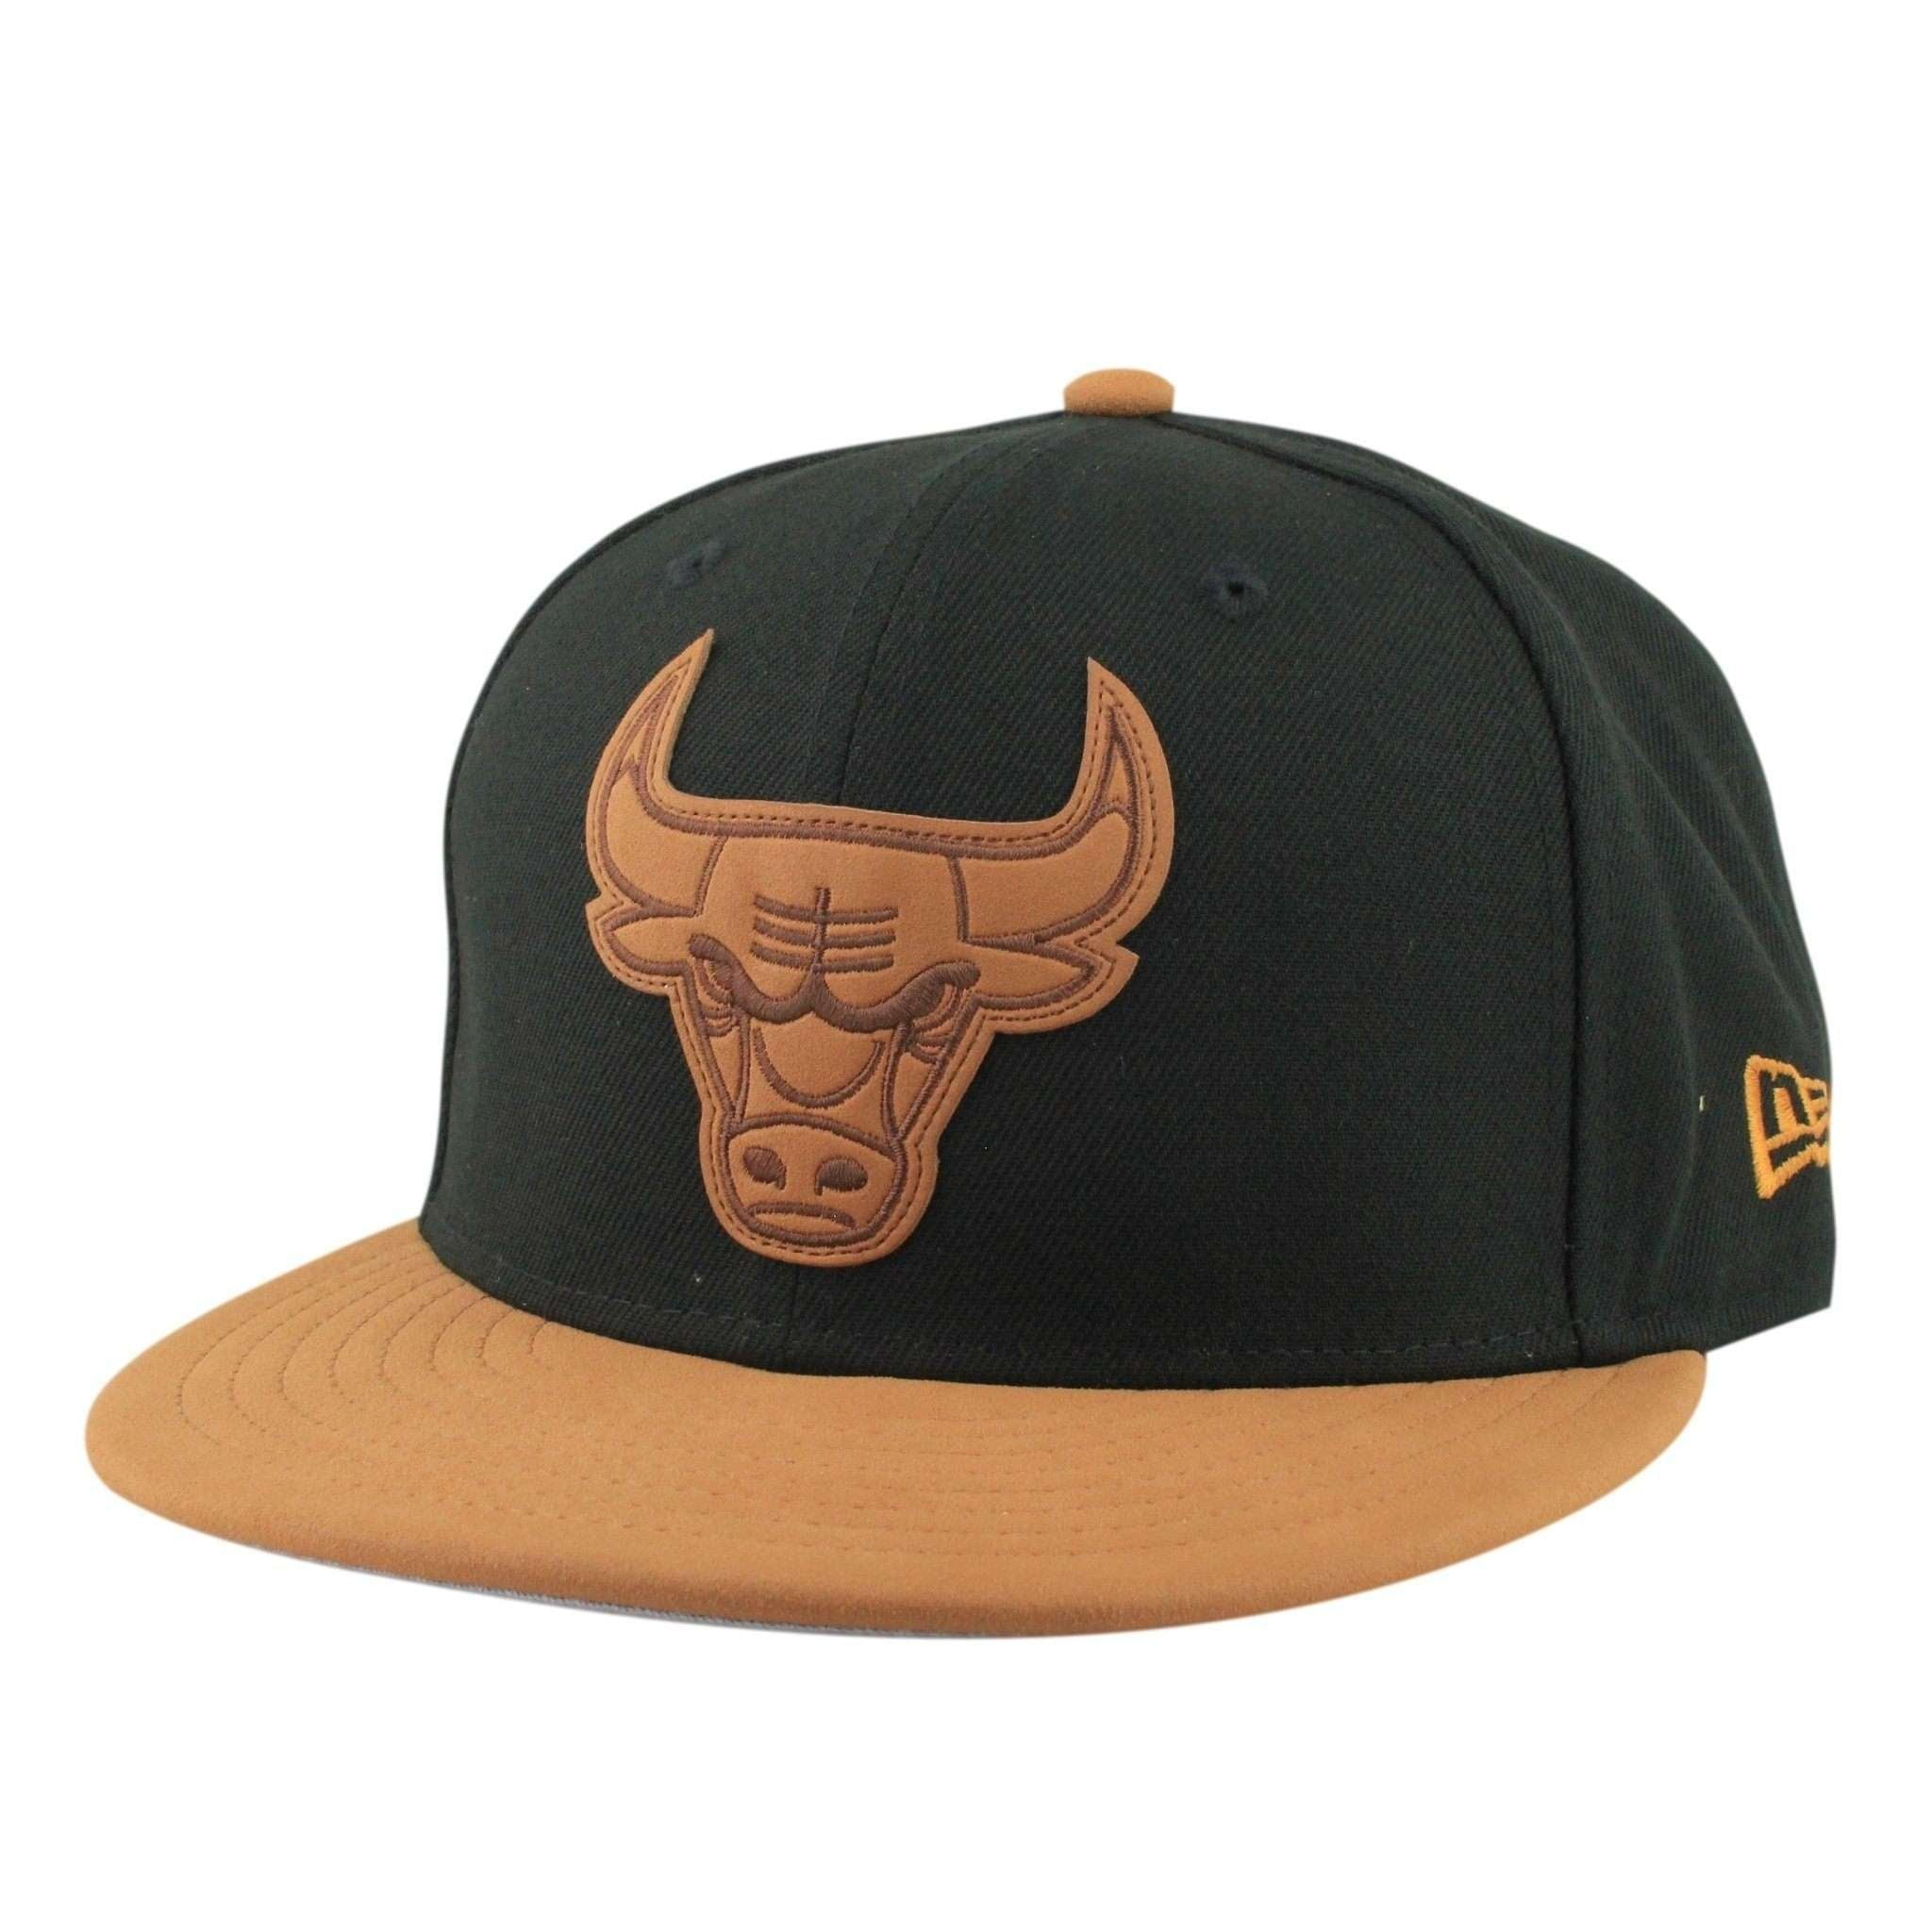 b2330083bb7 Chicago Bulls Leather Patcher Black Brown Snapback